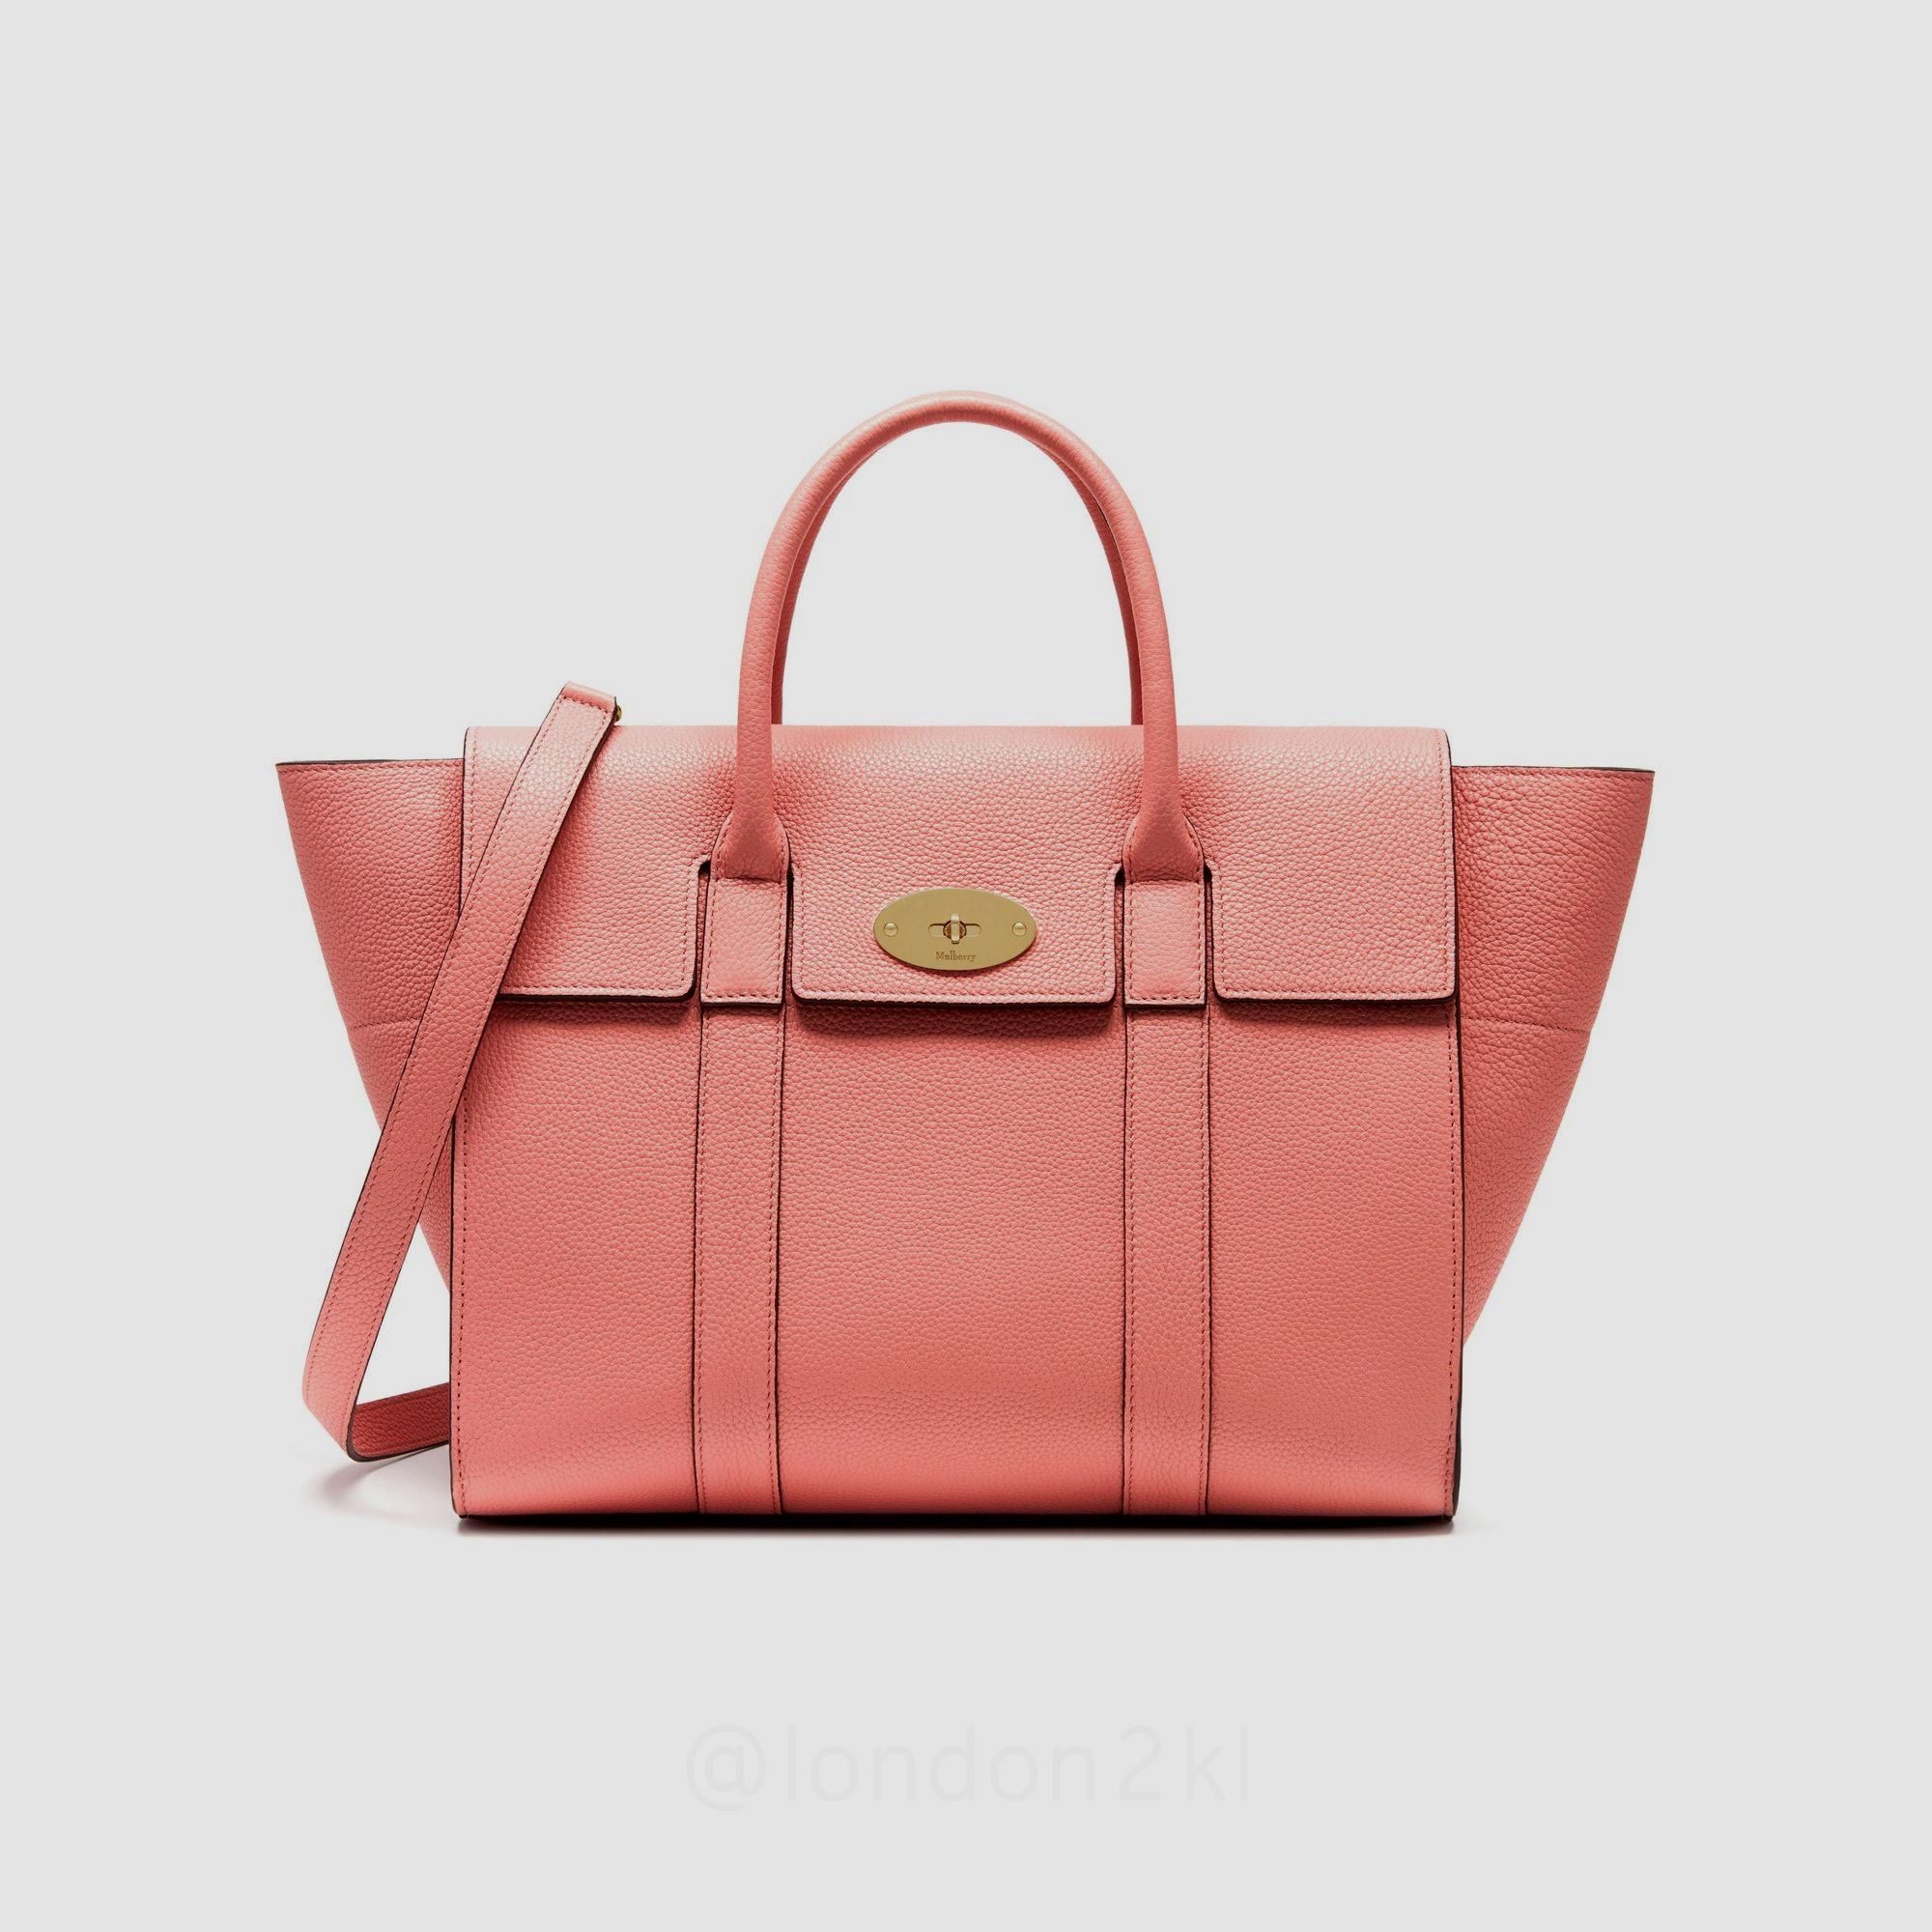 Mulberry Bayswater with Strap Macaroon Pink Small Classic Grain Pink is  cute anytime 6121ccfb3096b